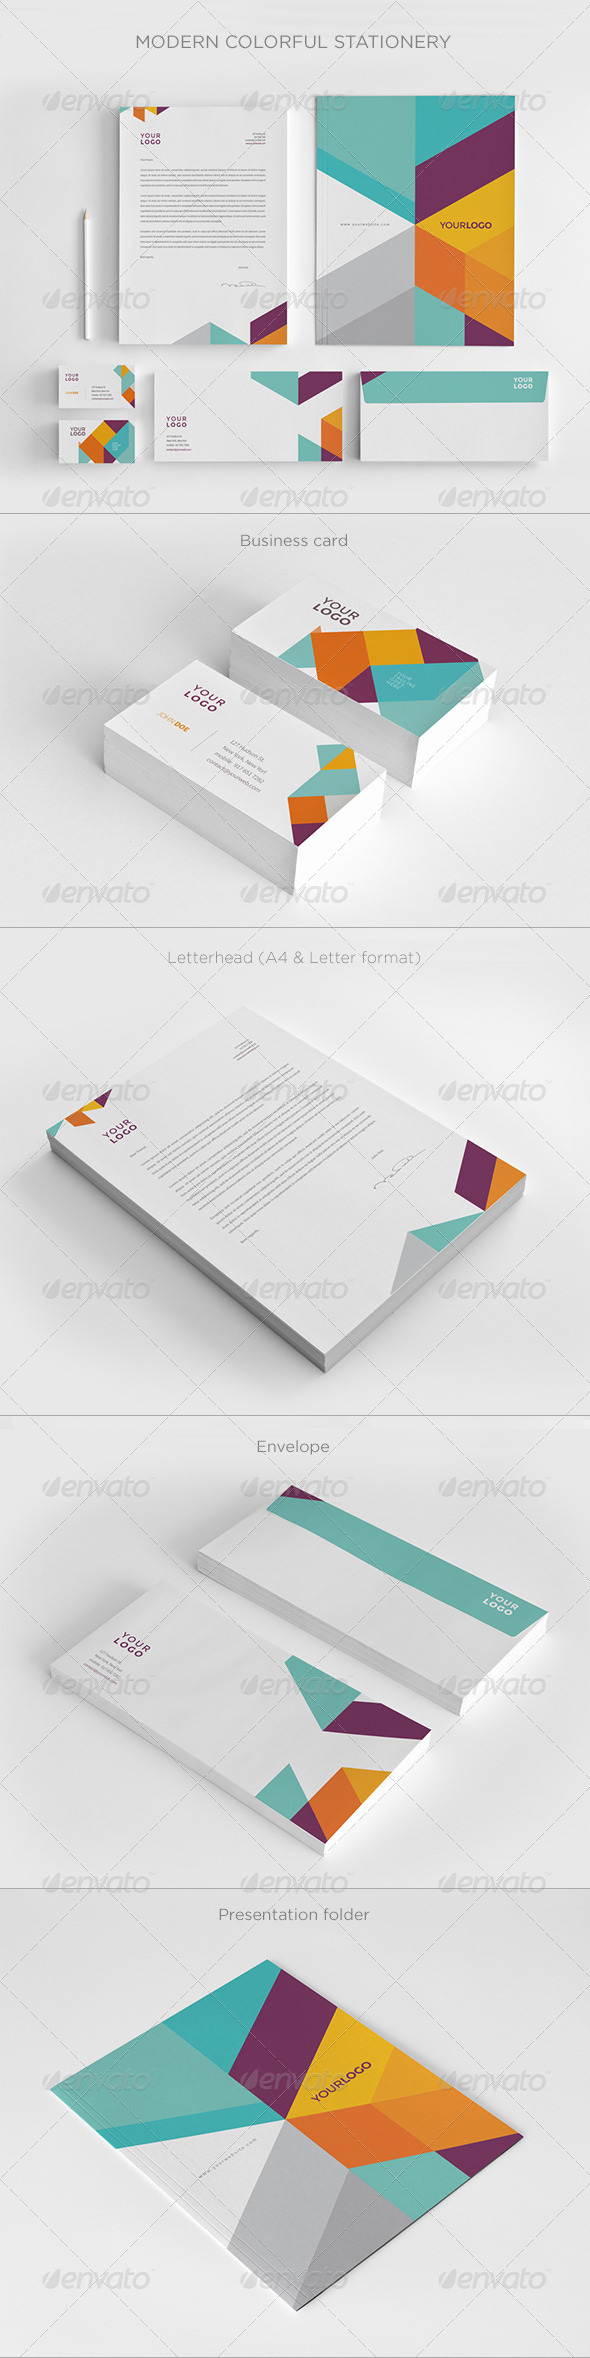 GraphicRiver Modern Colorful Stationery 7717605